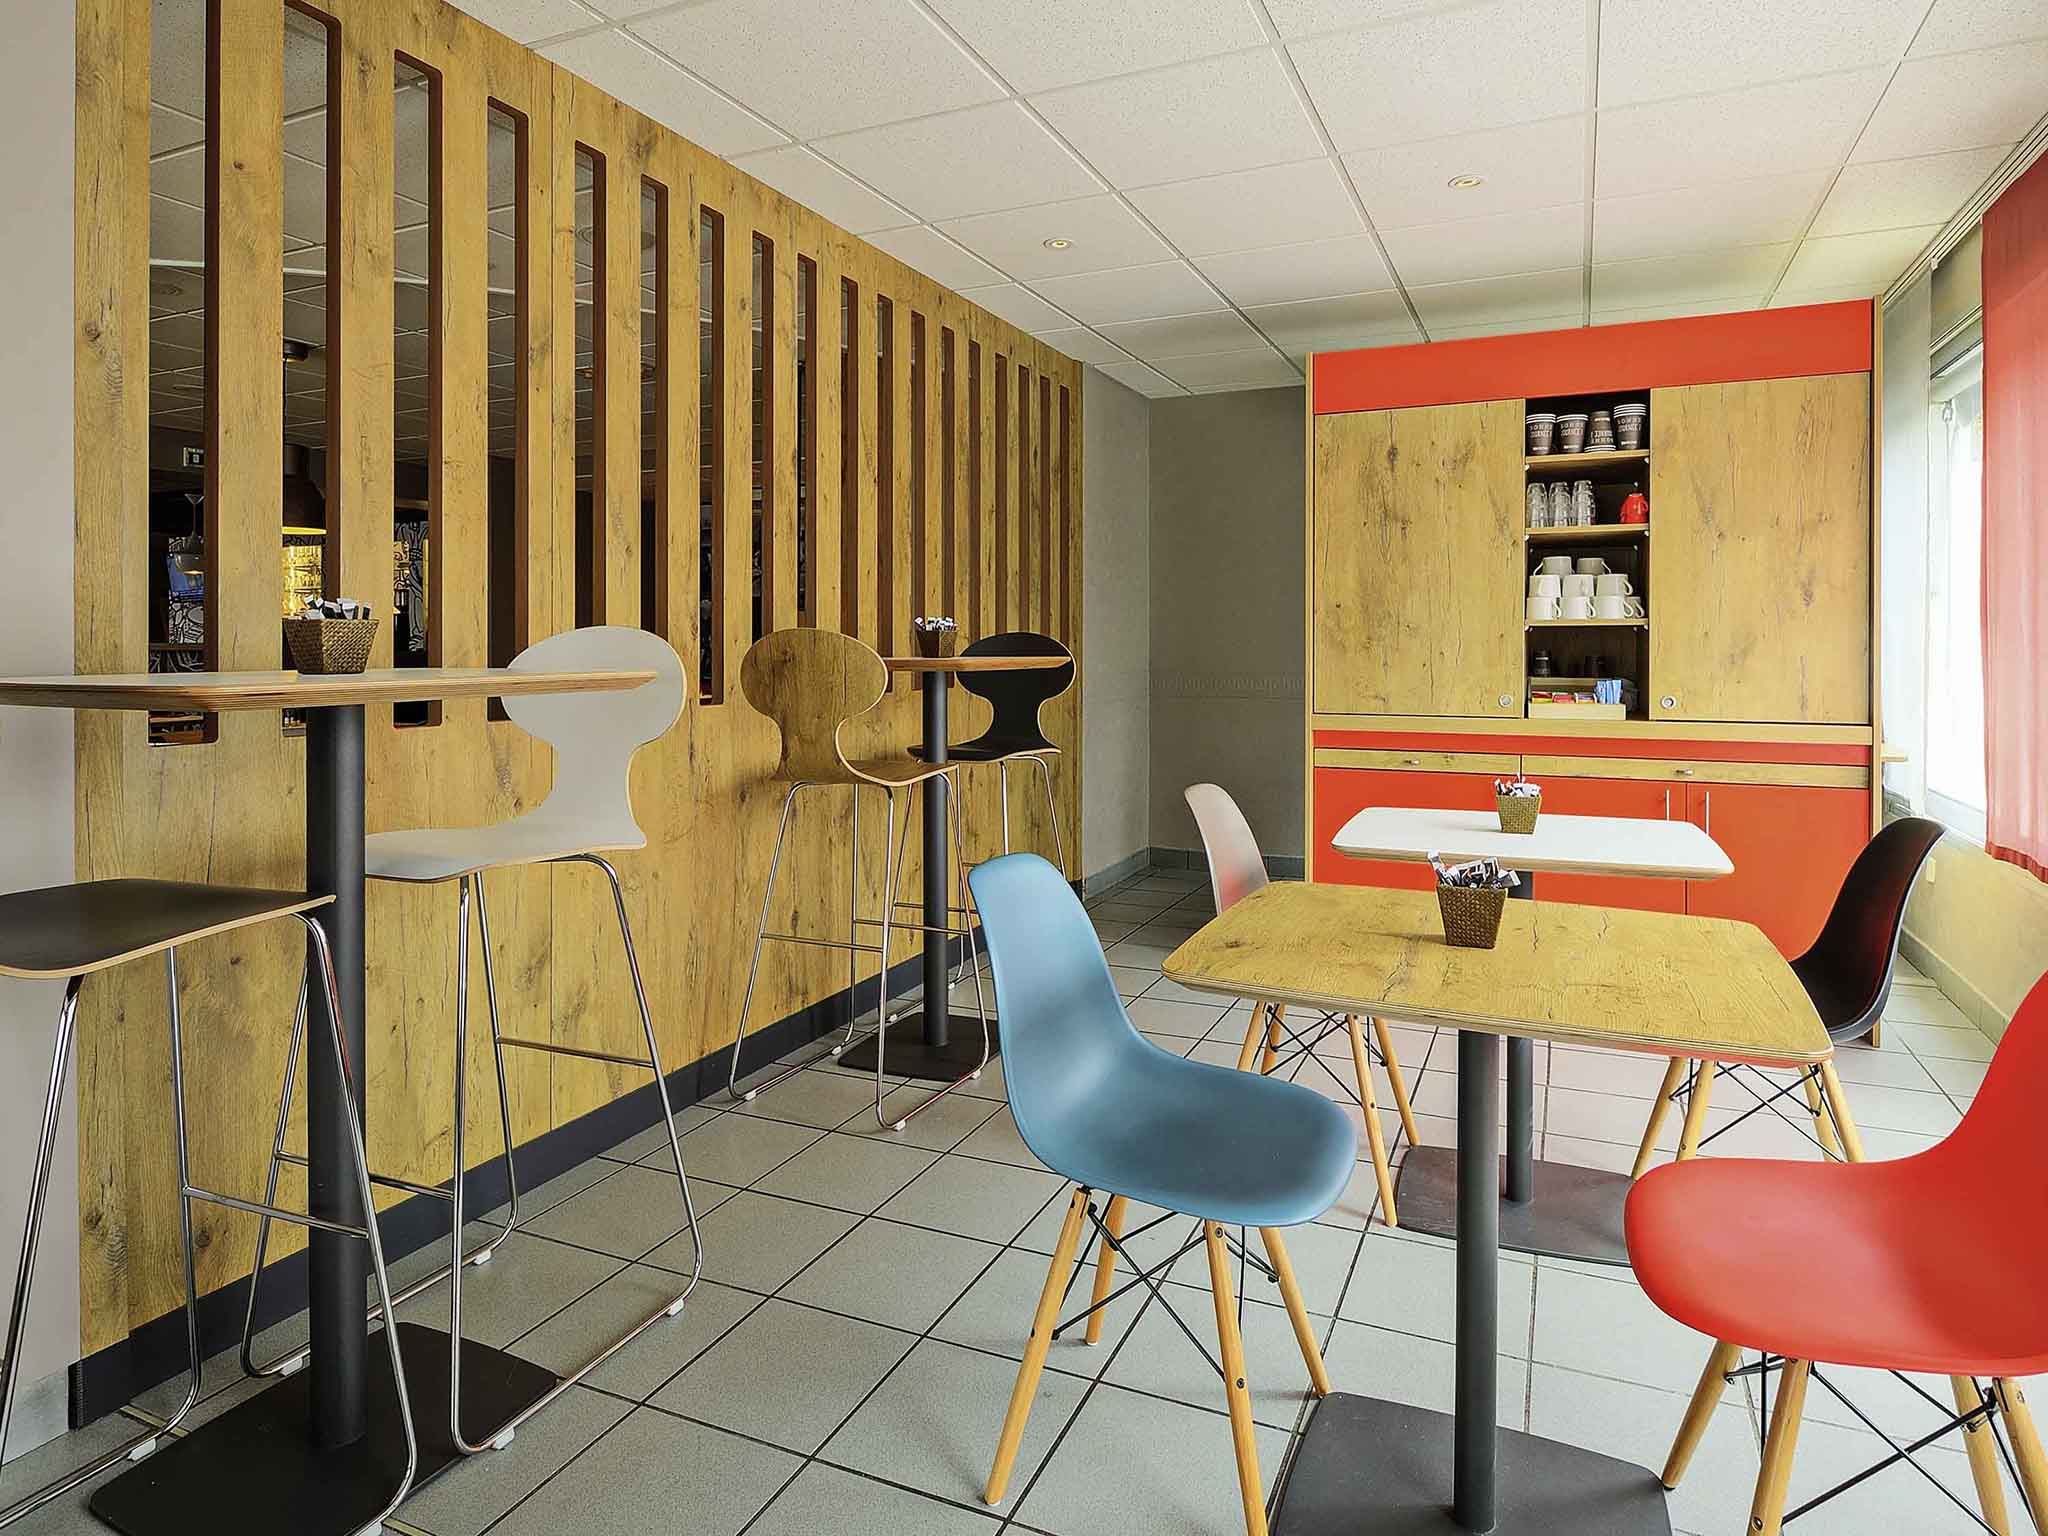 la maison a pizza poitiers gallery of breakfast ibis poitiers beaulieu with la maison a pizza. Black Bedroom Furniture Sets. Home Design Ideas